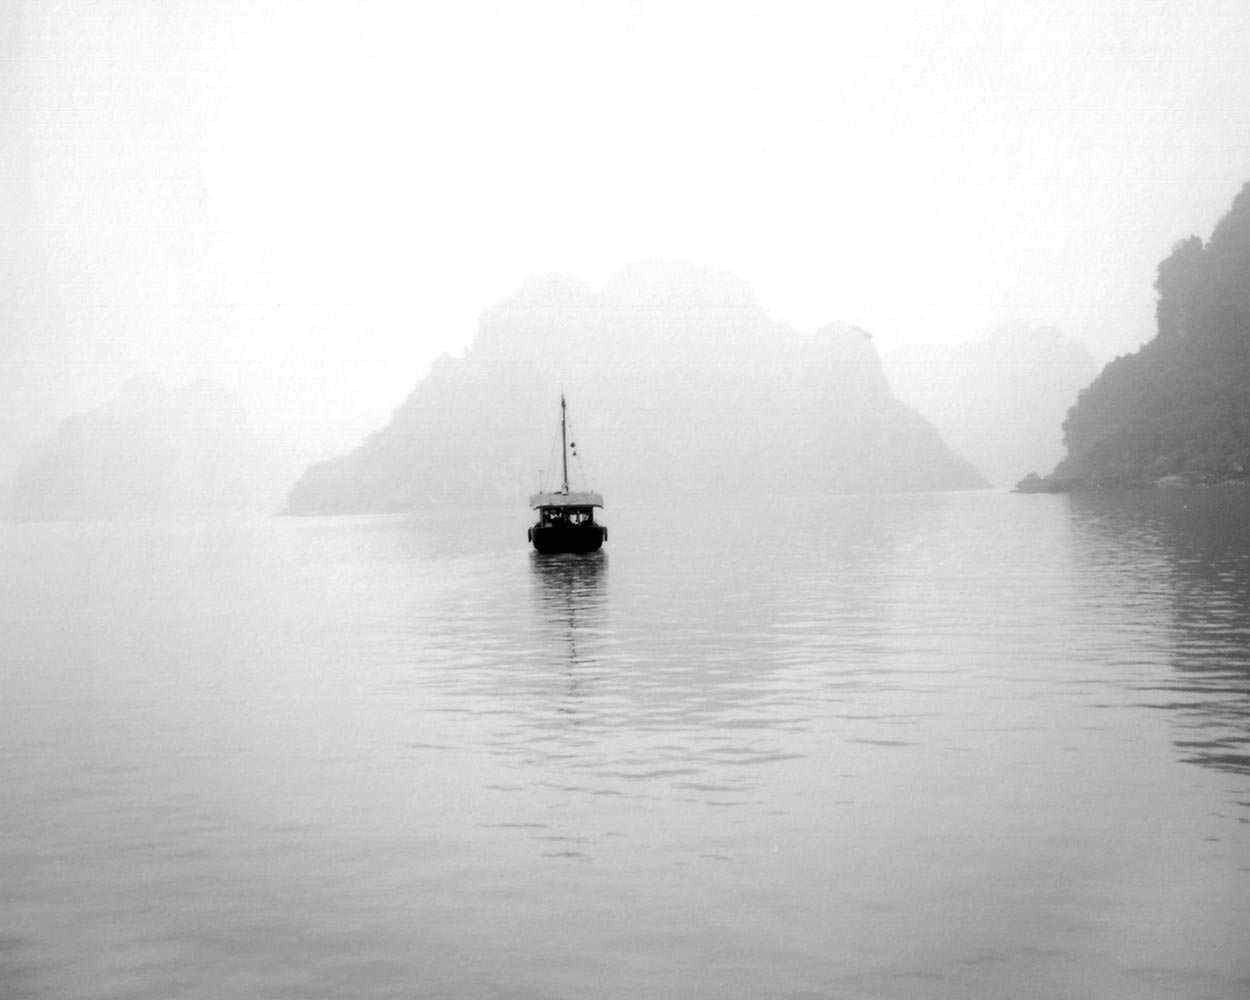 "<span class=""caption-title"">Boat on Water</span>, Vietnam, 2004<span class=""caption-copyright"">© Rodney Smith</span>"